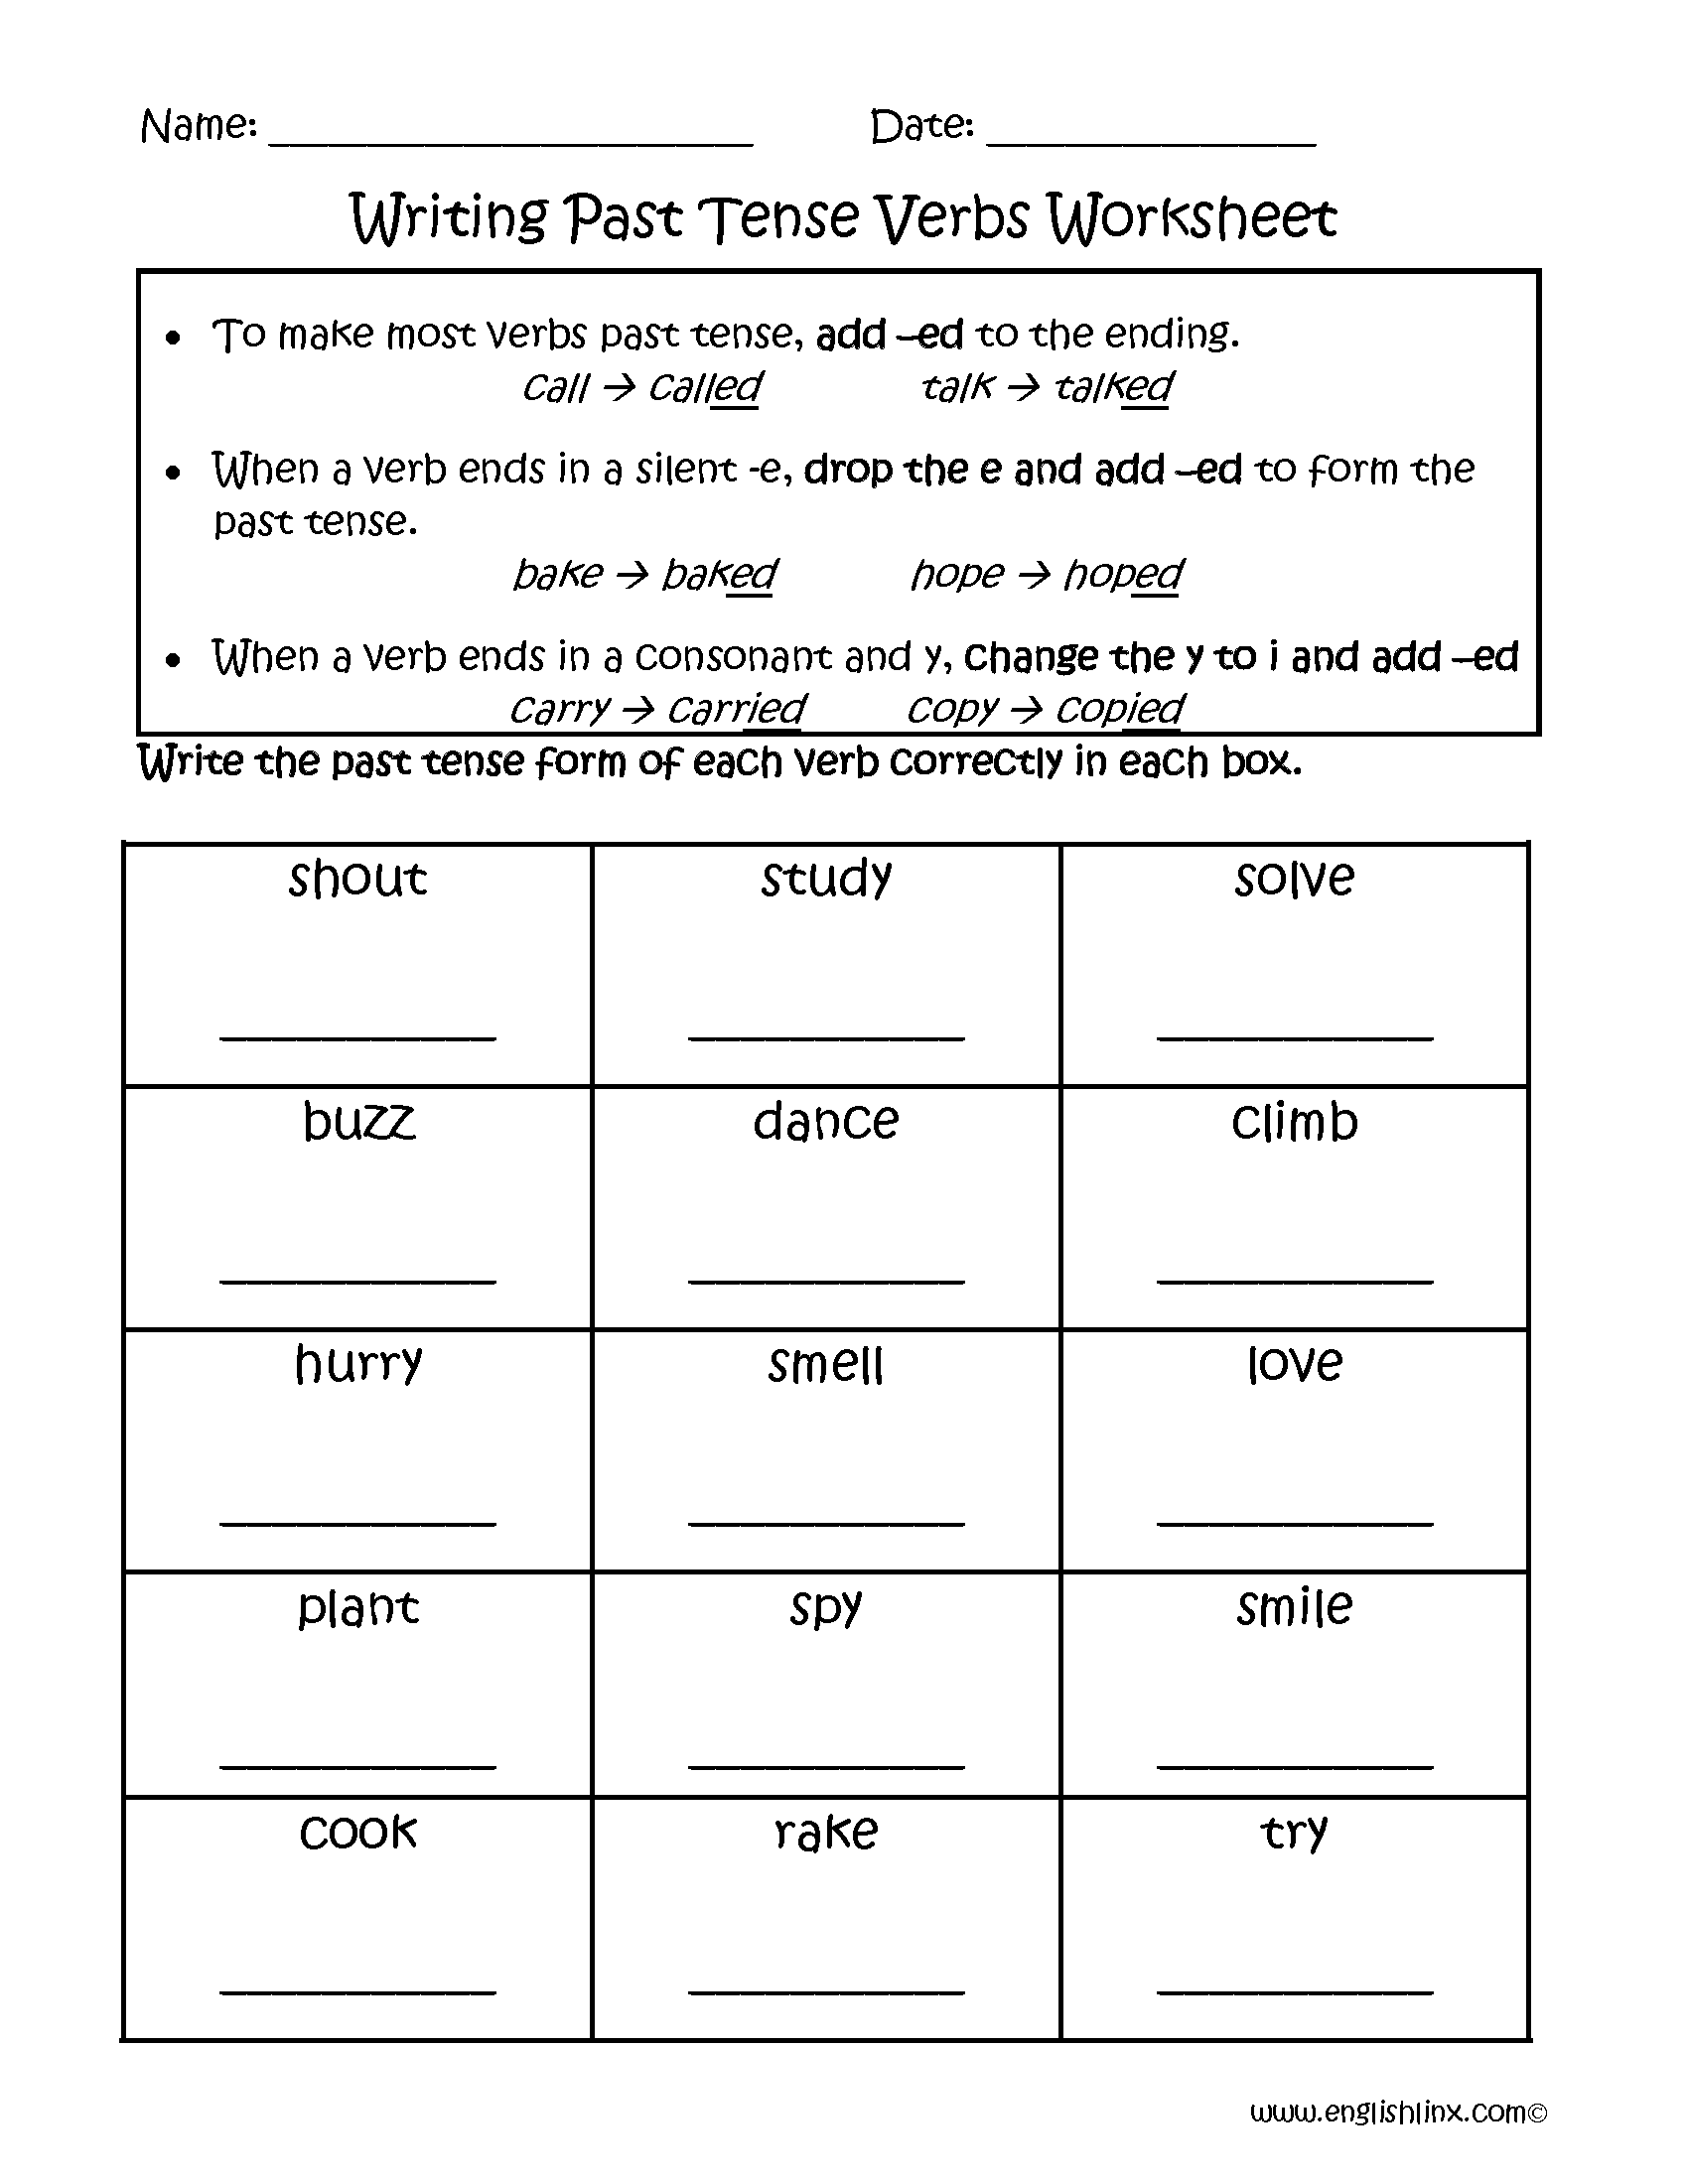 small resolution of Writing Past Tense Verbs Worksheets   Verb worksheets